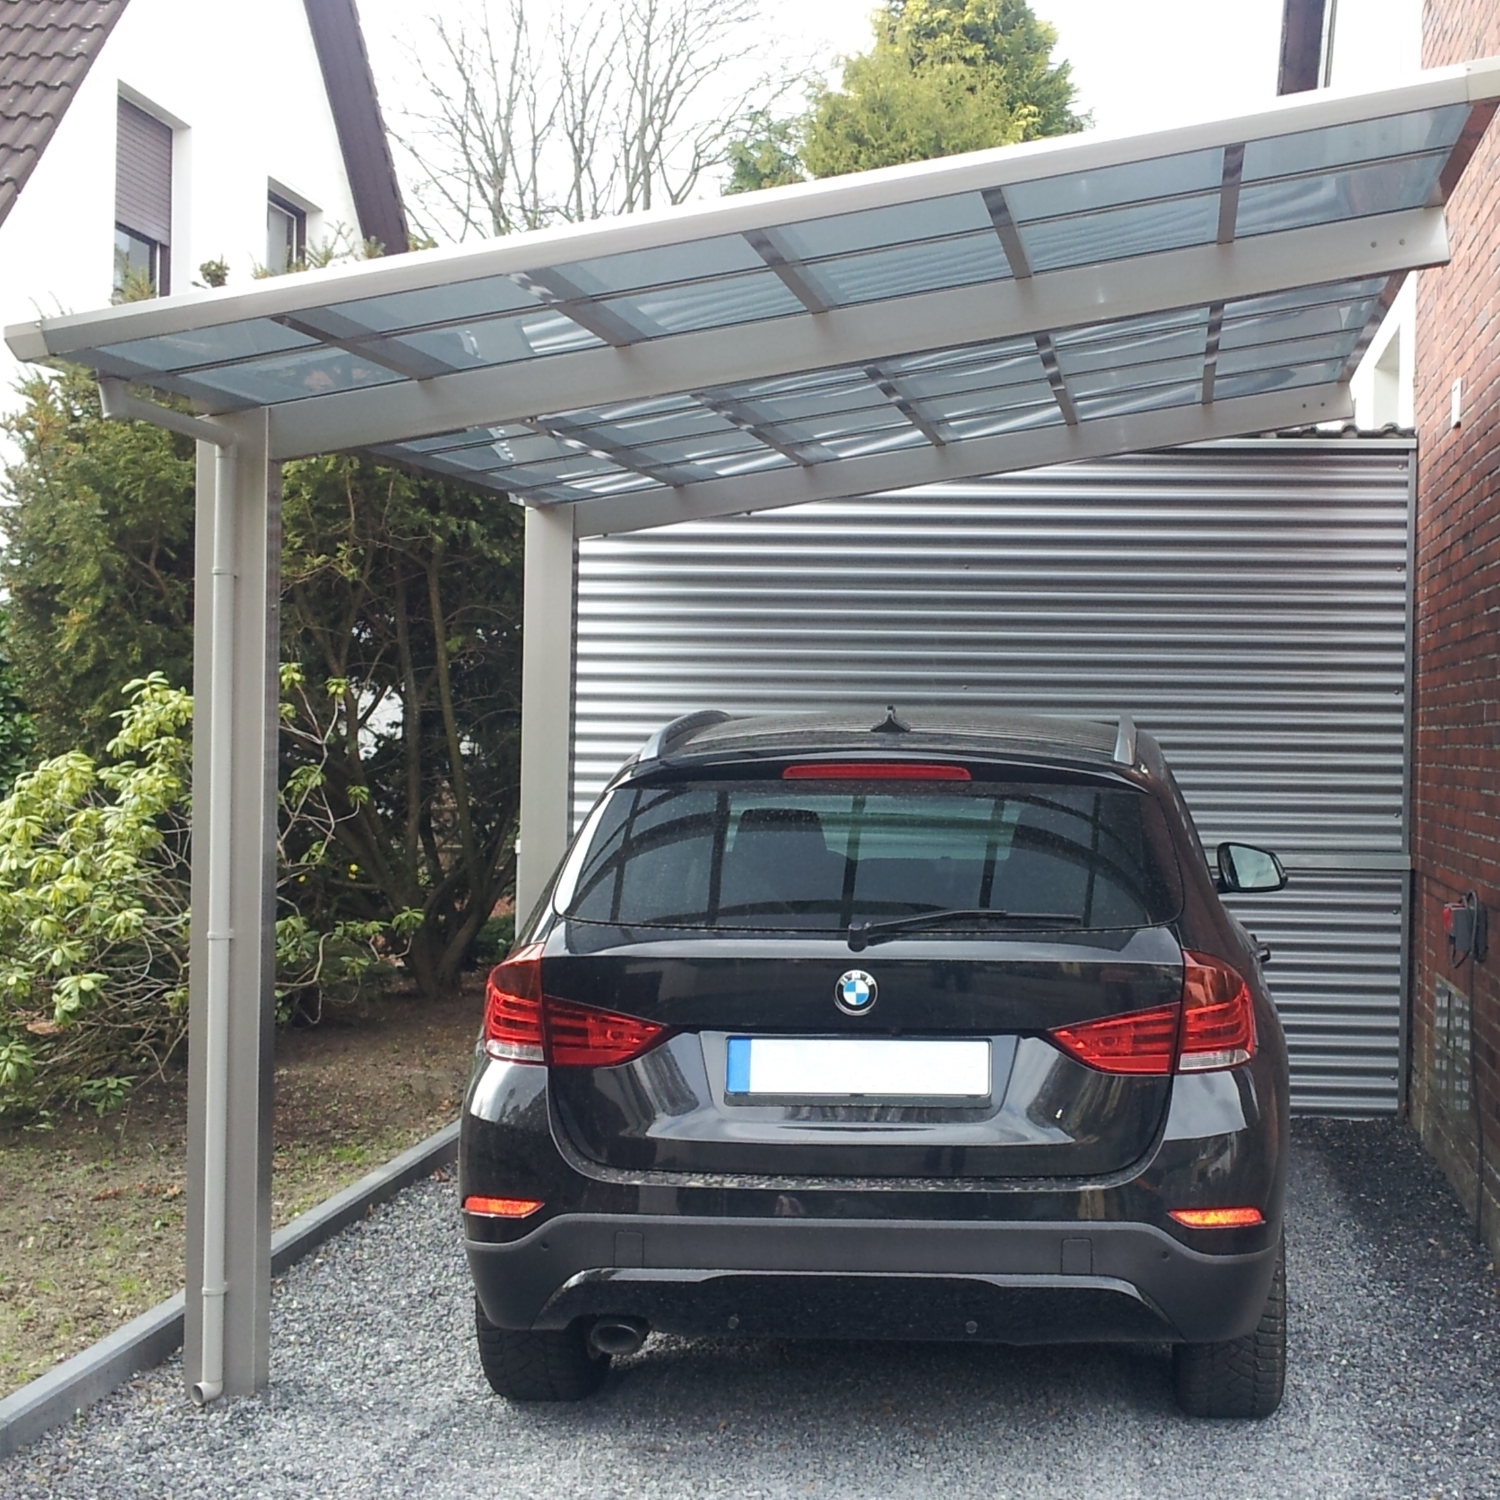 aluminium carport bausatz pavillon einzelcarport terrassen berdachung 495x270cm ebay. Black Bedroom Furniture Sets. Home Design Ideas